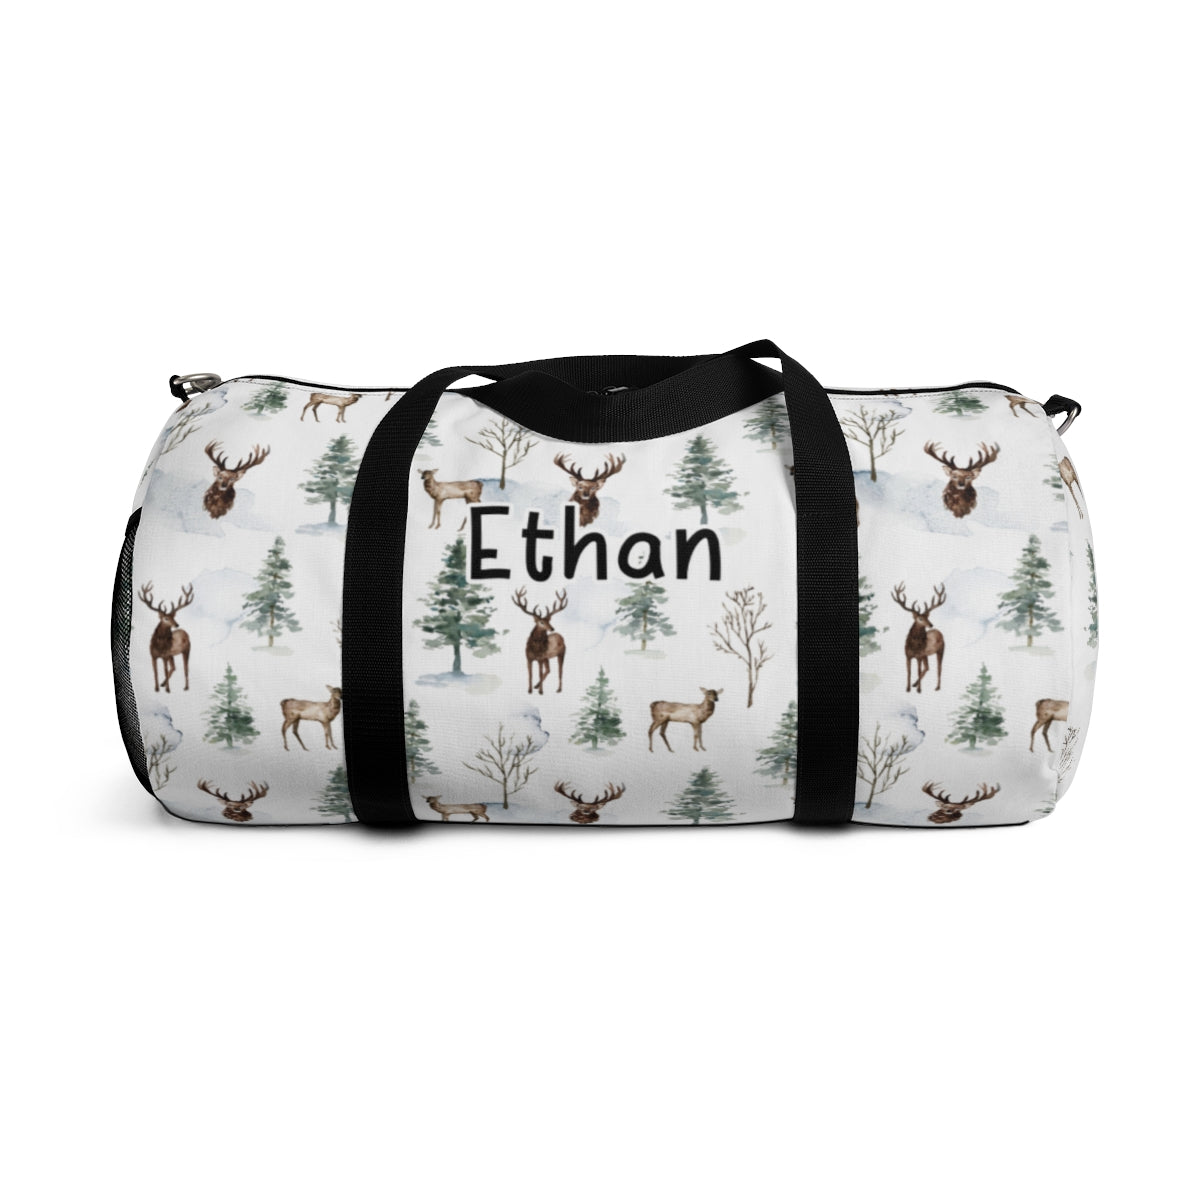 Personalized Woodland Duffel Bag, Deer Hospital Bag - Enchanted Forest